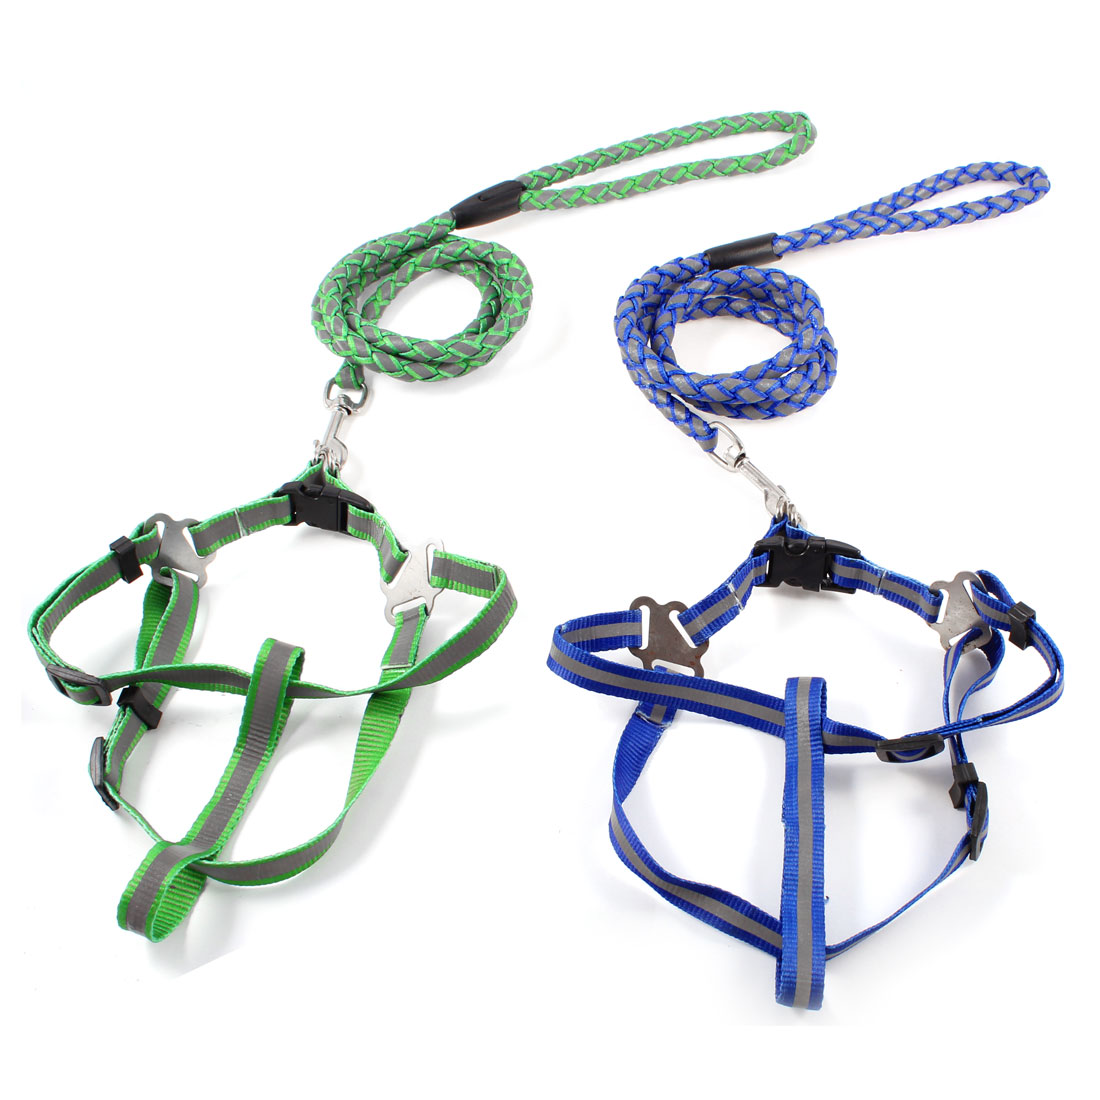 2 Pcs Adjustable Harness Reflective Pulling Traction Leash Tri Color for Pet Dog